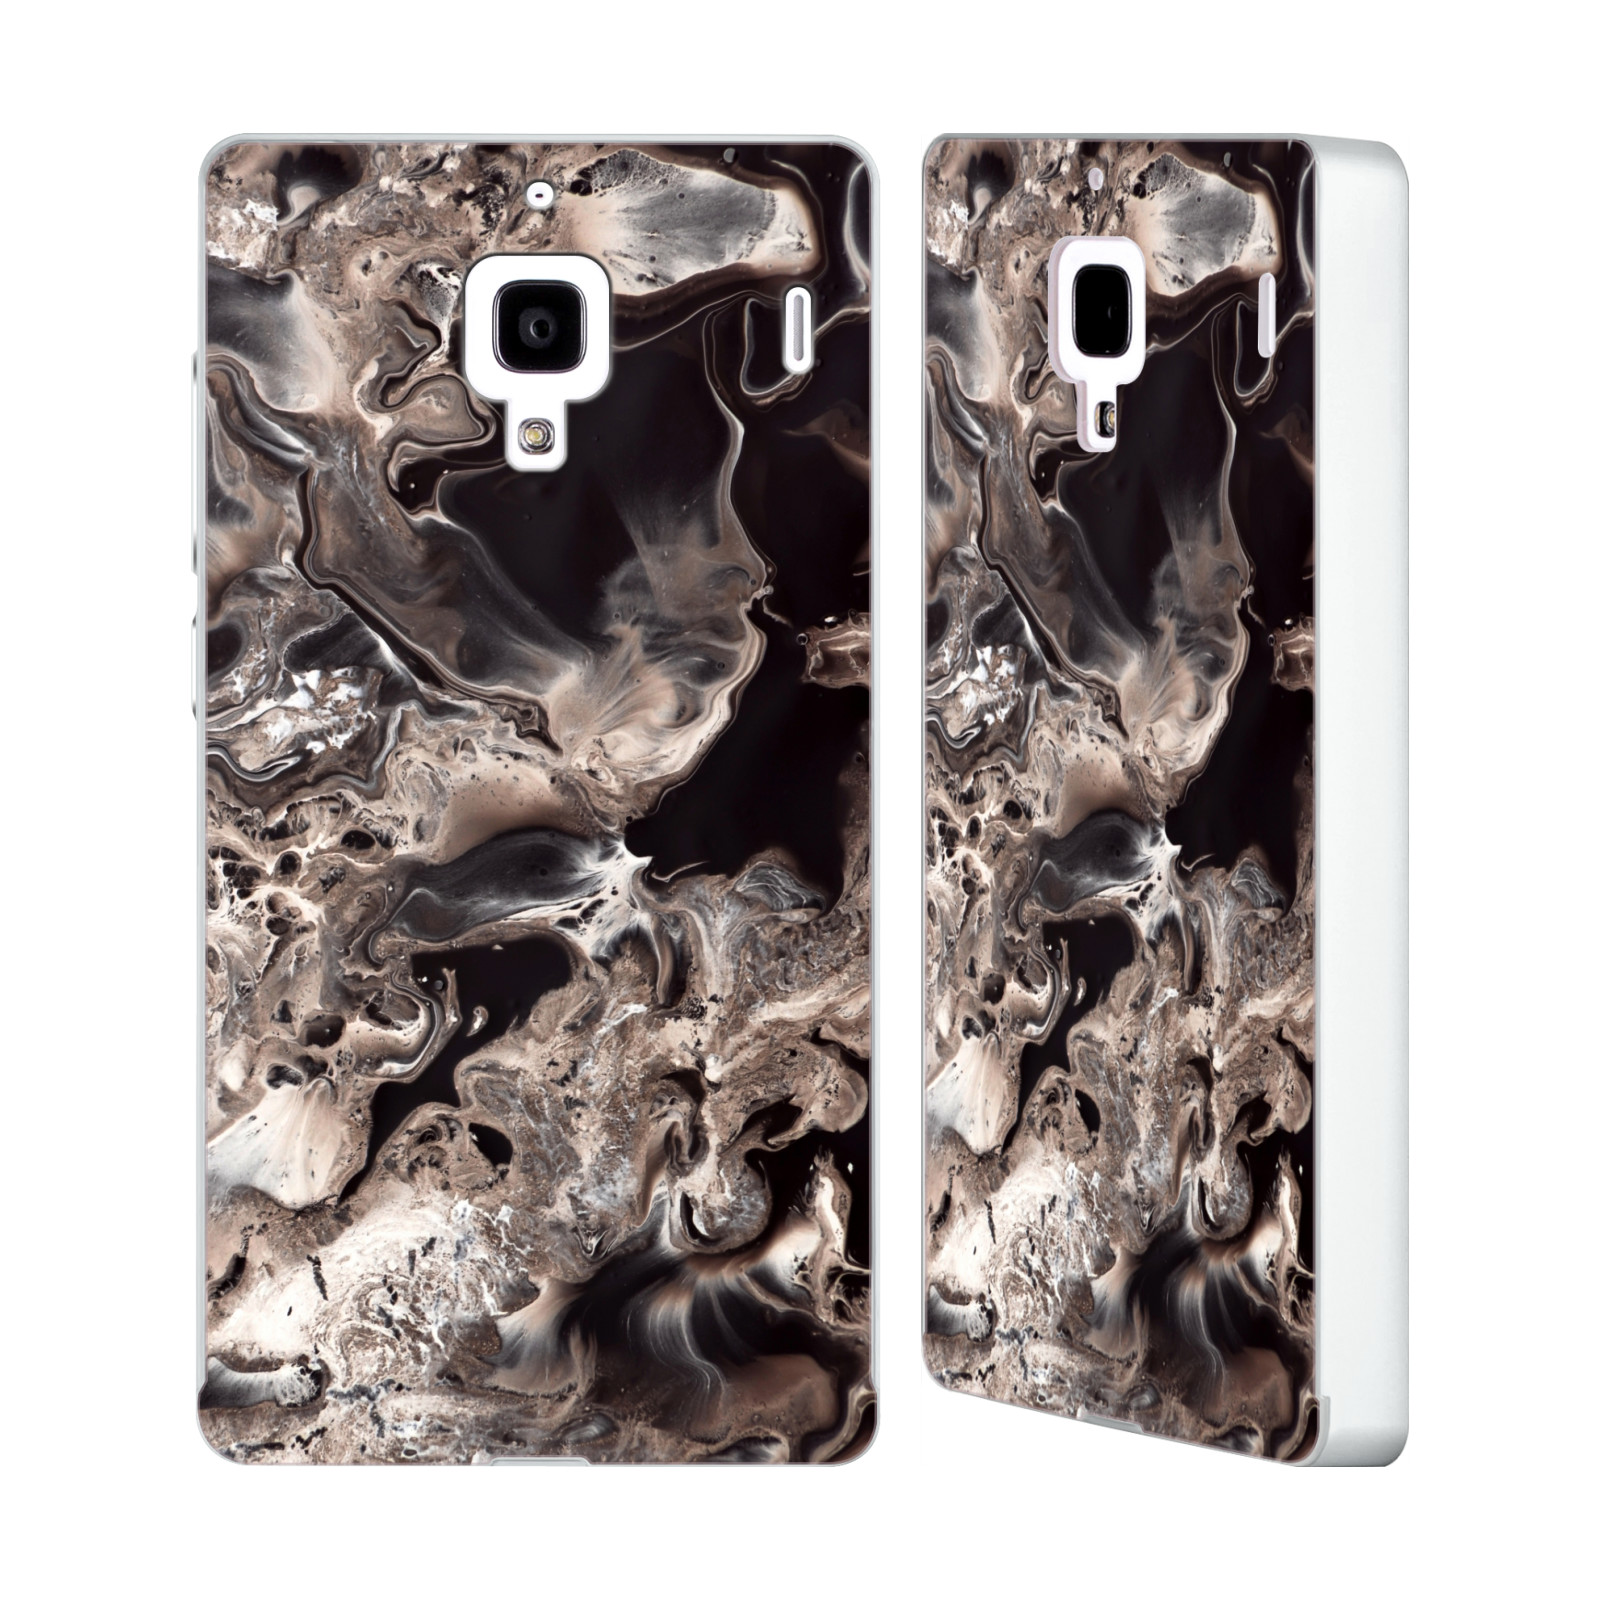 OFFICIAL-DJUNO-TOMSNI-ABSTRACT-2-SILVER-SLIDER-CASE-FOR-HUAWEI-XIAOMI-PHONES